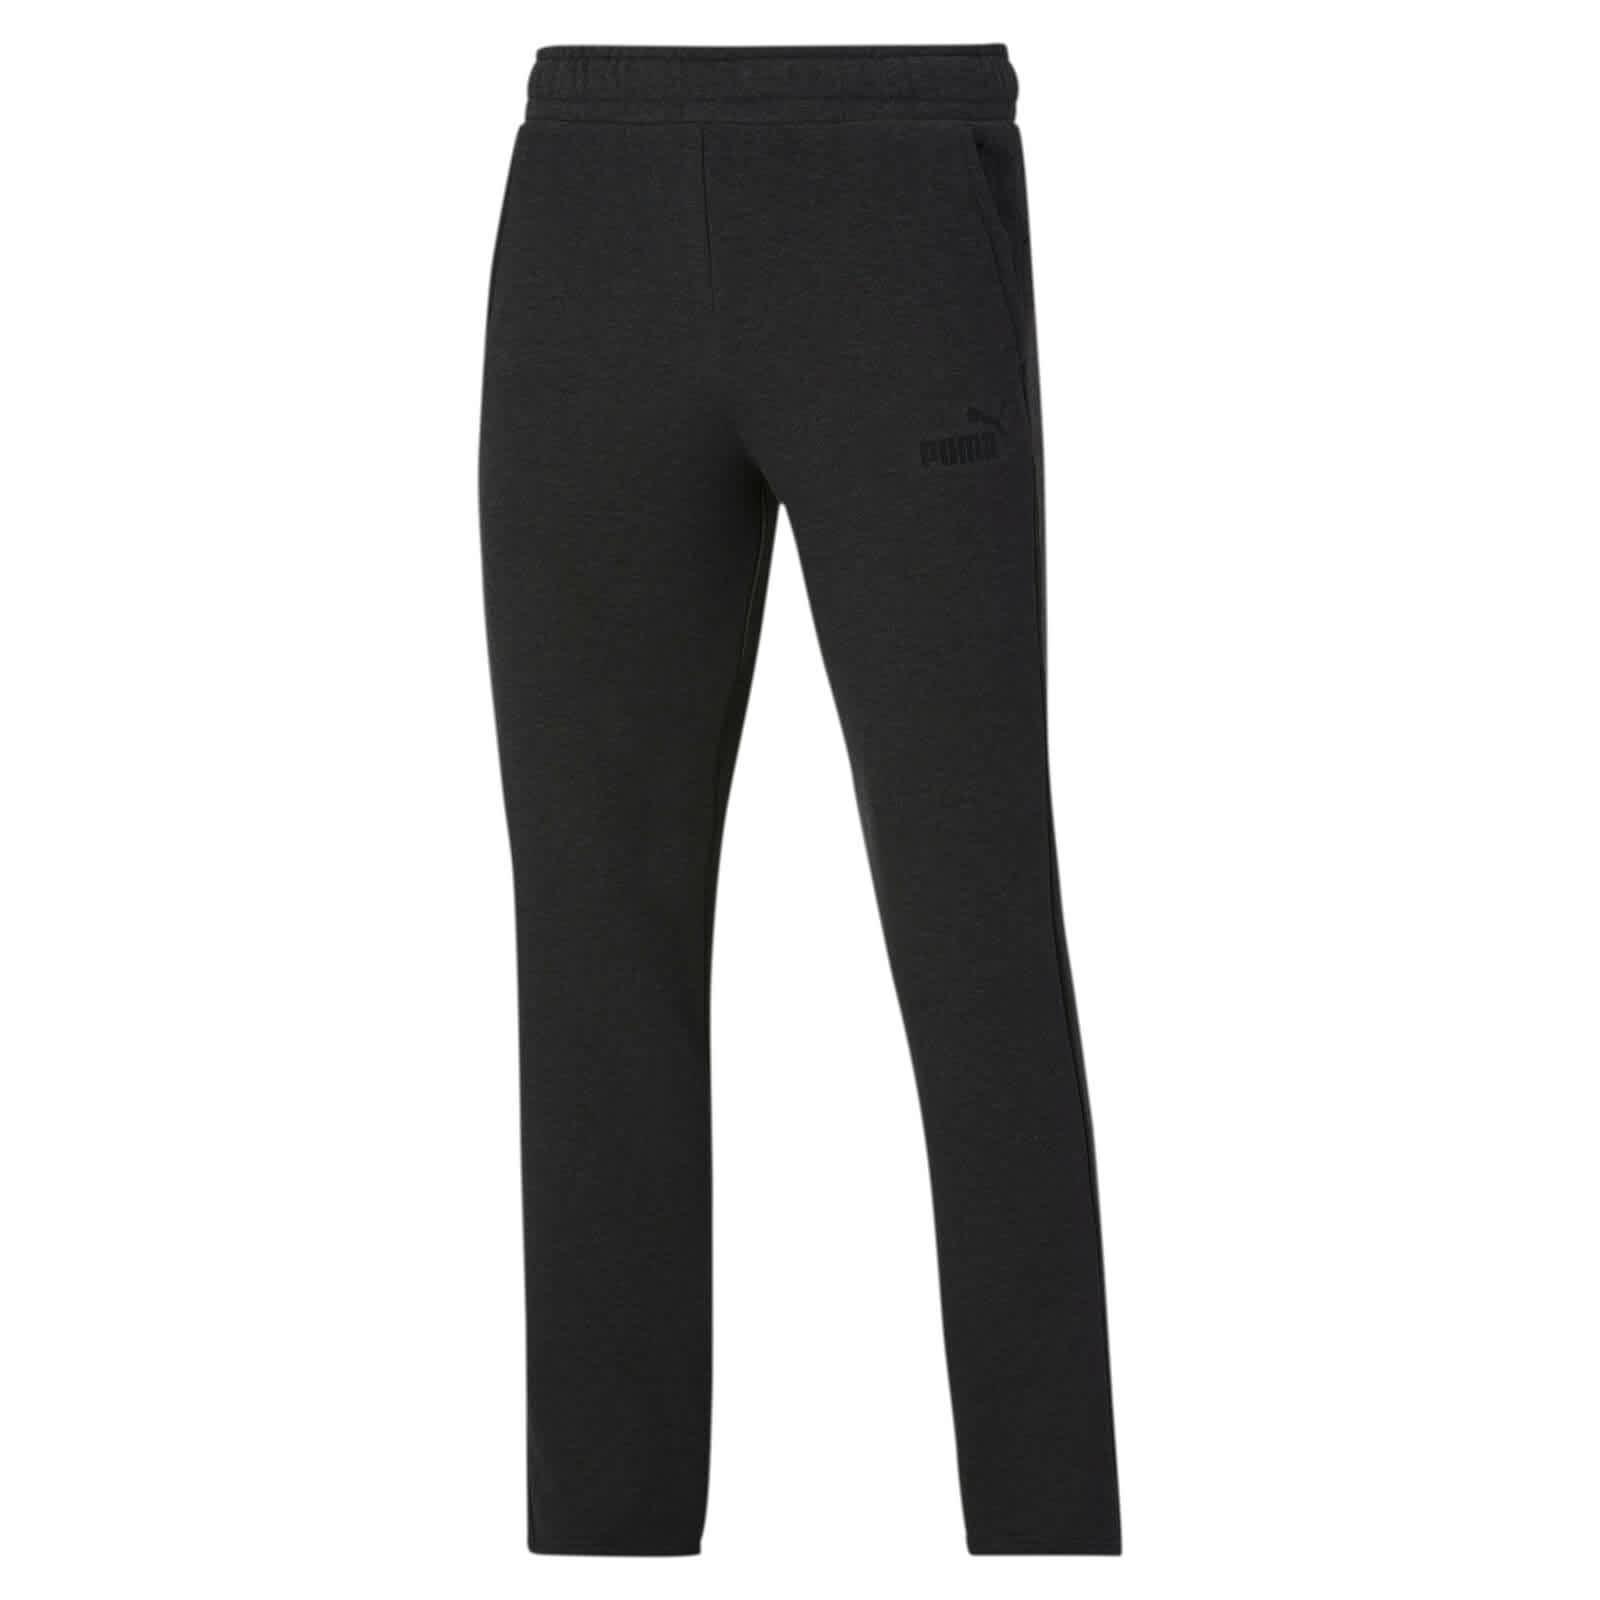 PUMA Men's Essentials Logo Pants